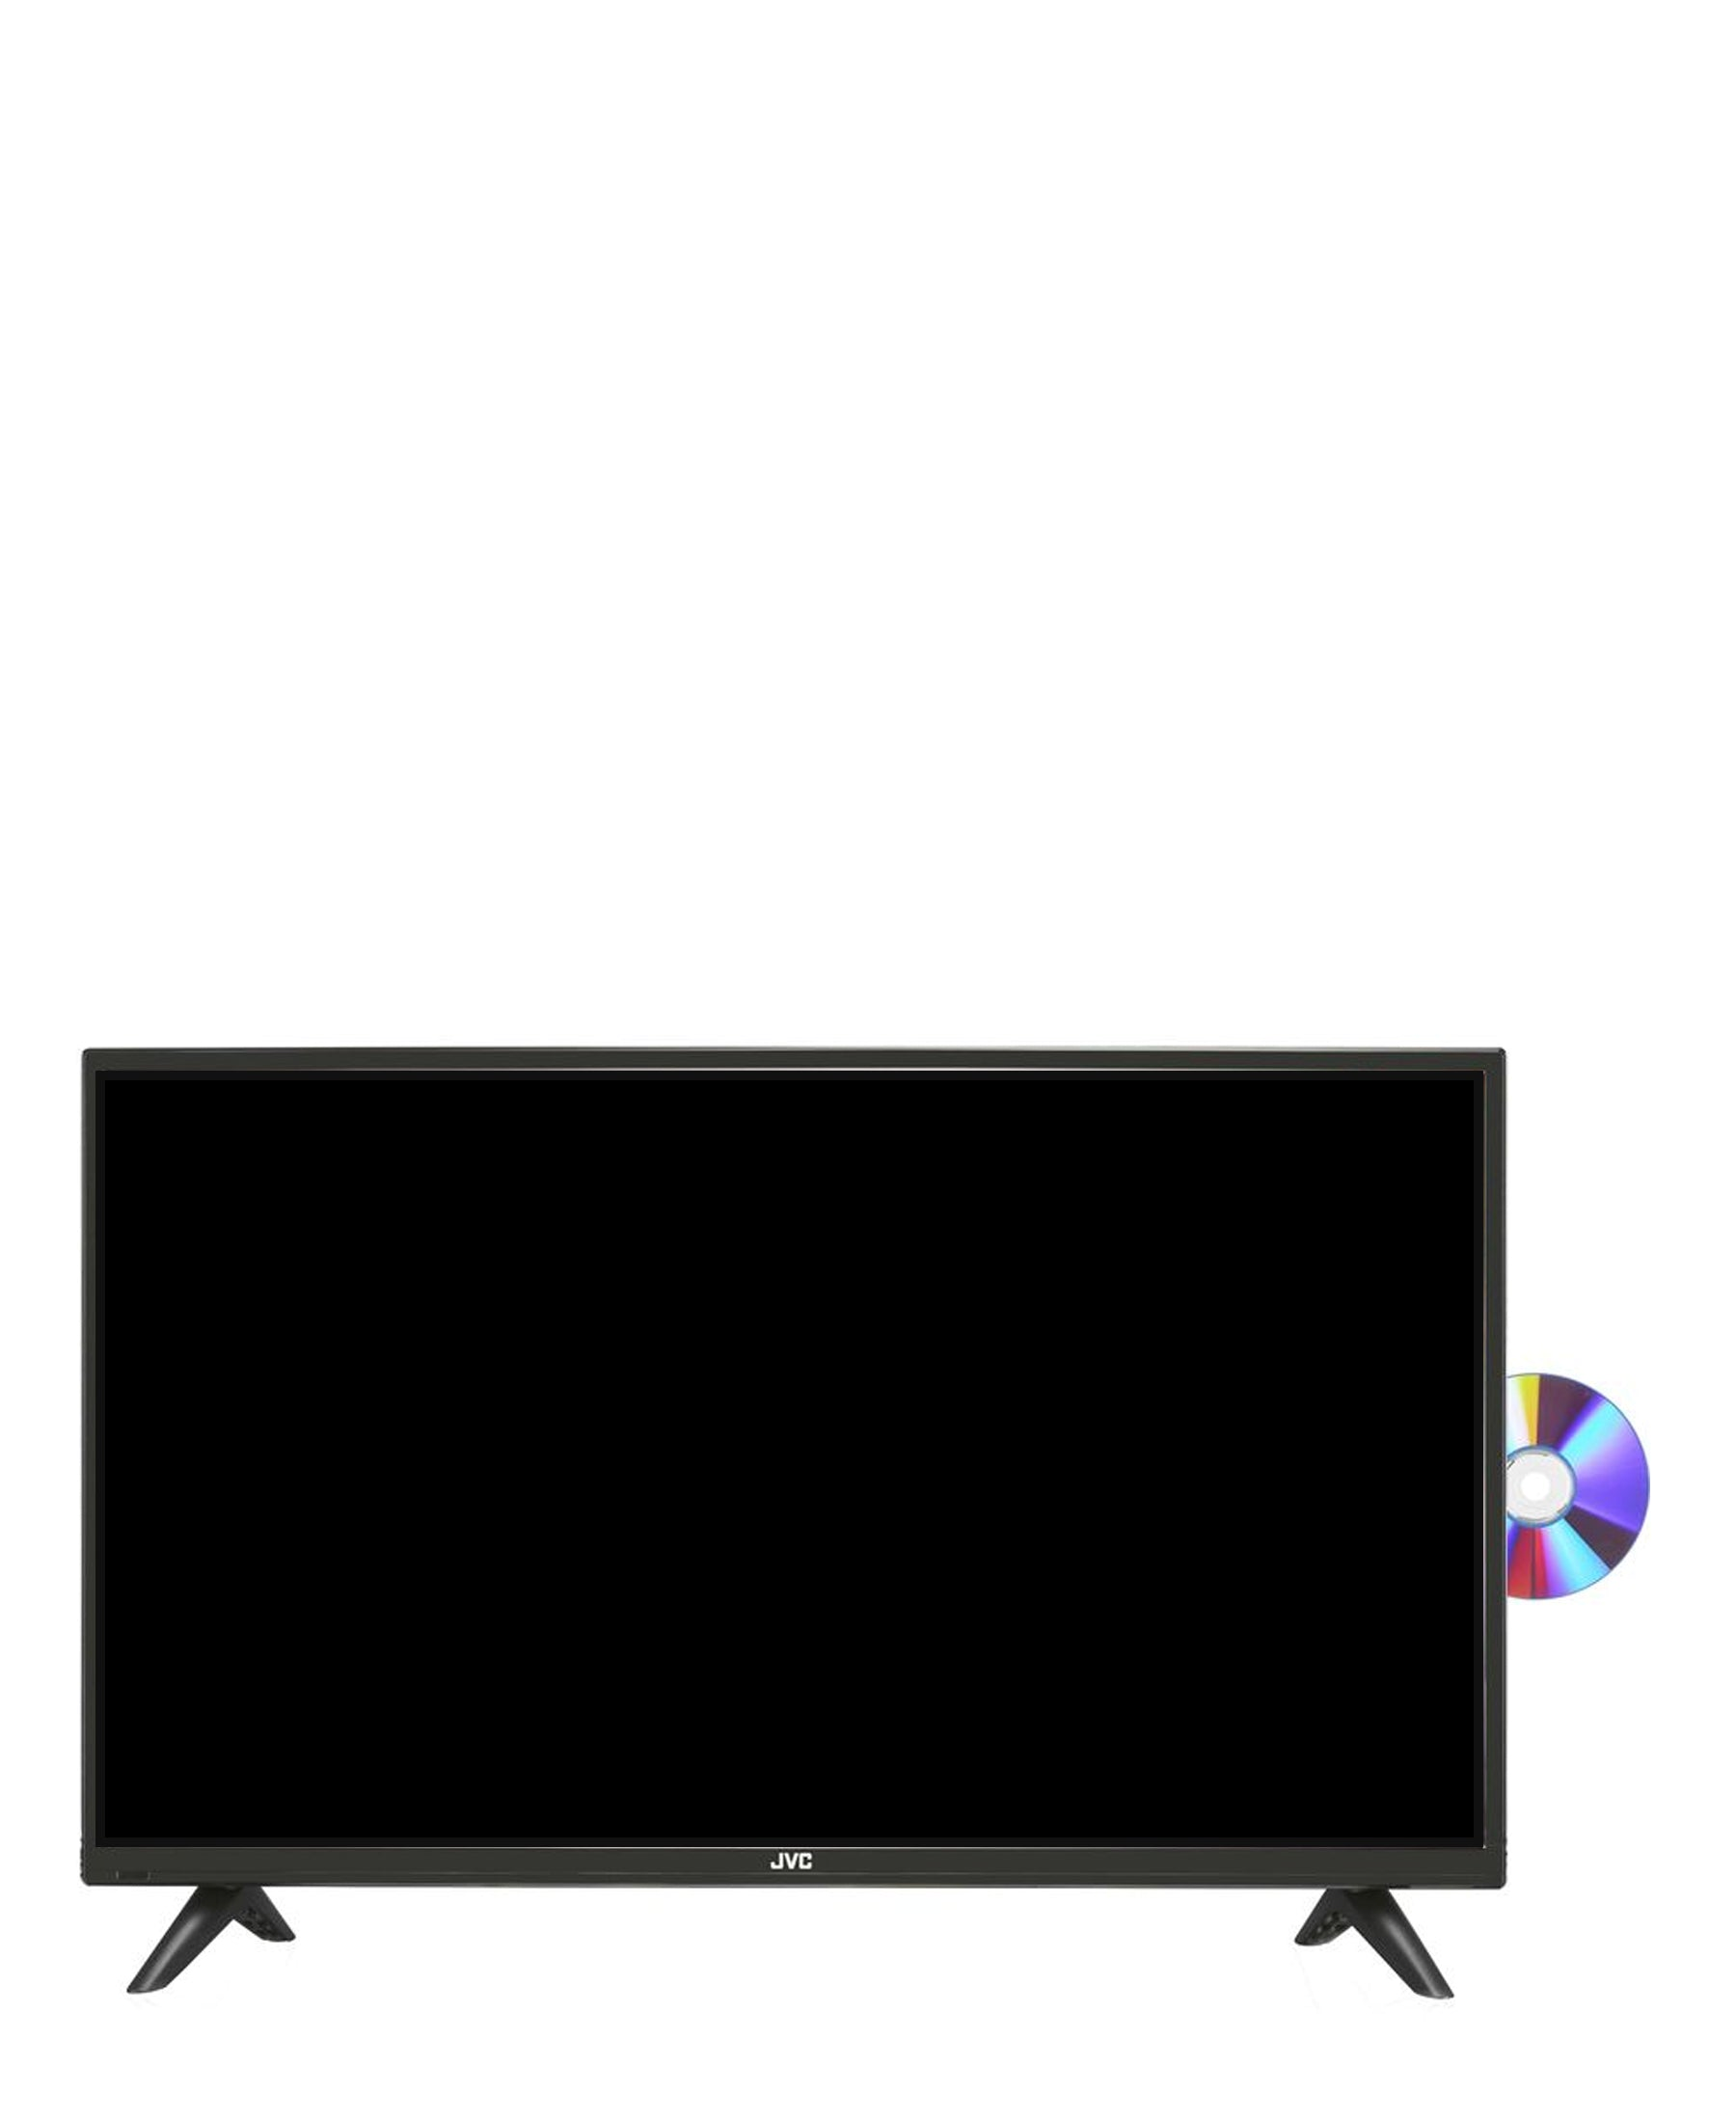 JVC 32'' HD LED TV With Built - in DVD Player - Black